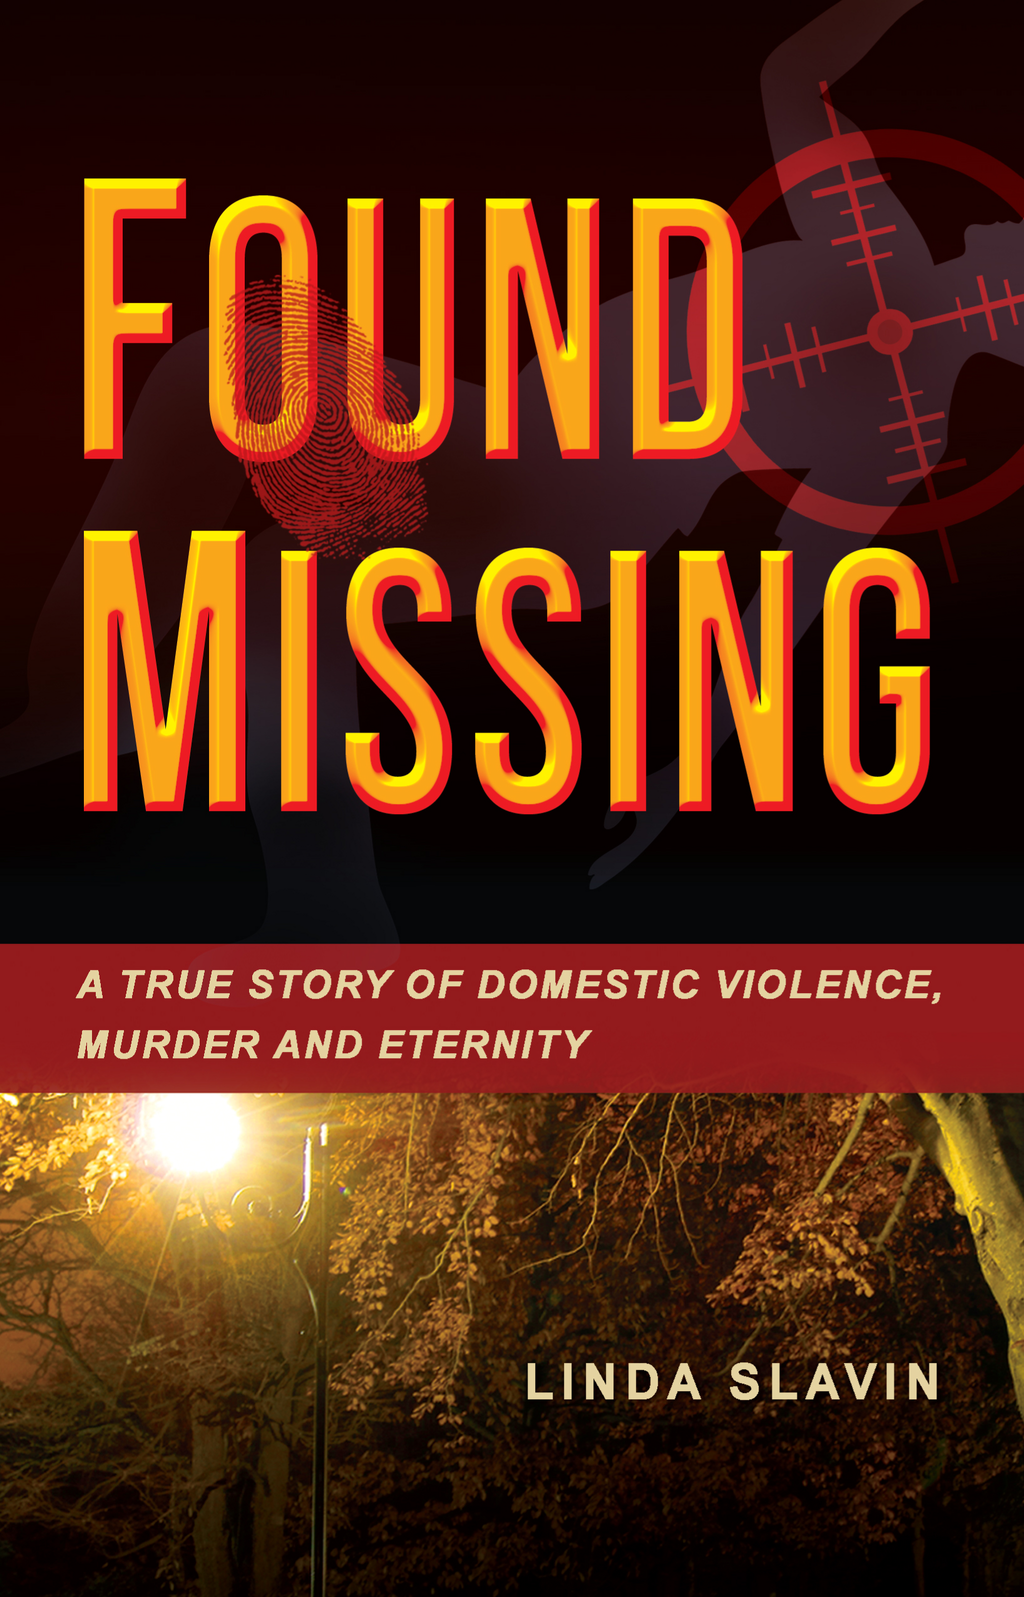 Found Missing: A True Story of Domestic Violence, Murder and Eternity